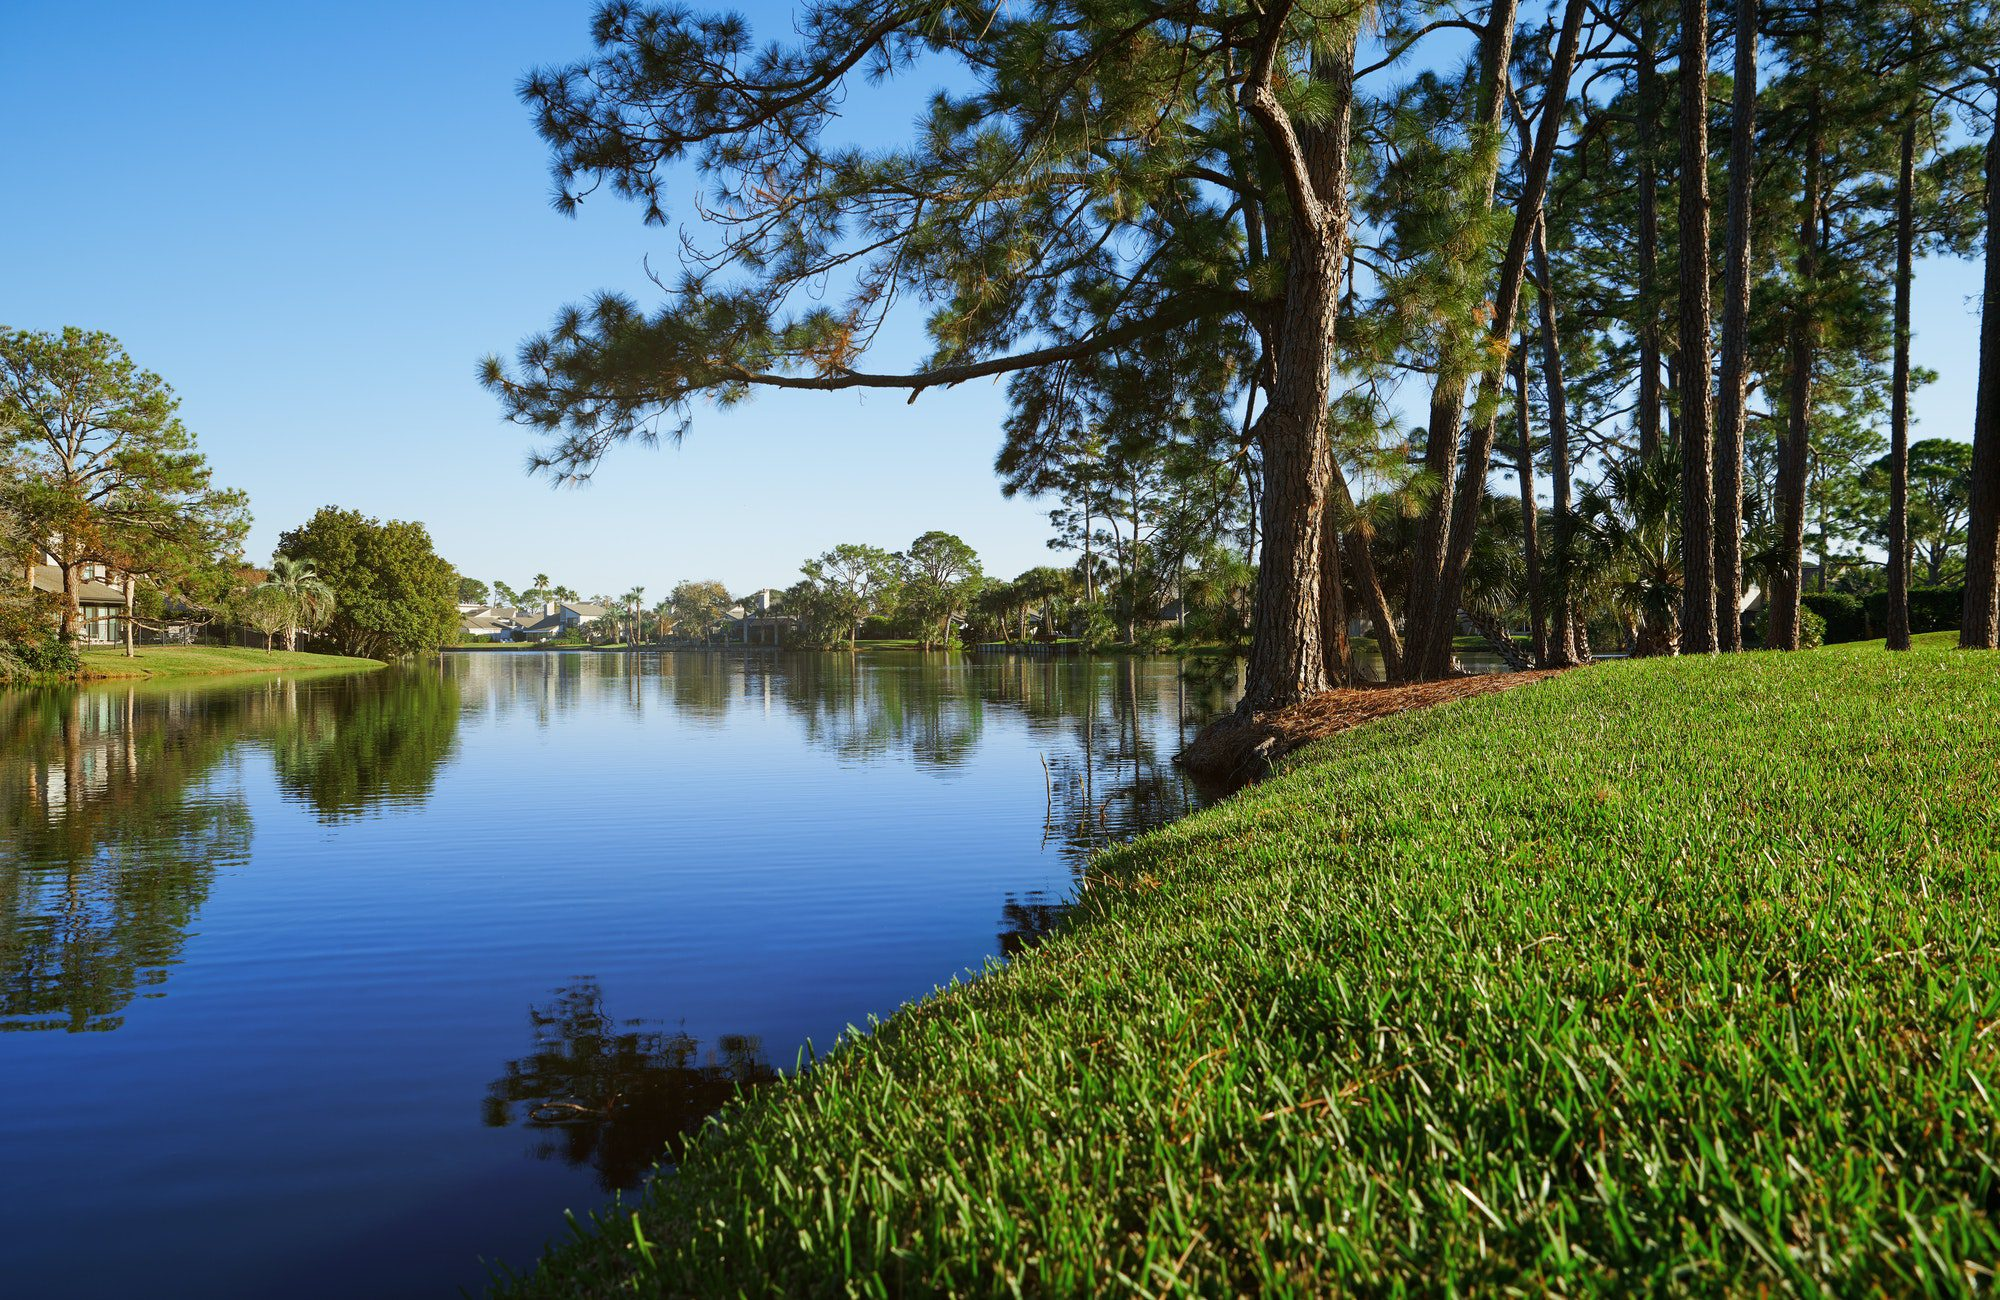 Palm trees growing next to the lake in Florida, USA